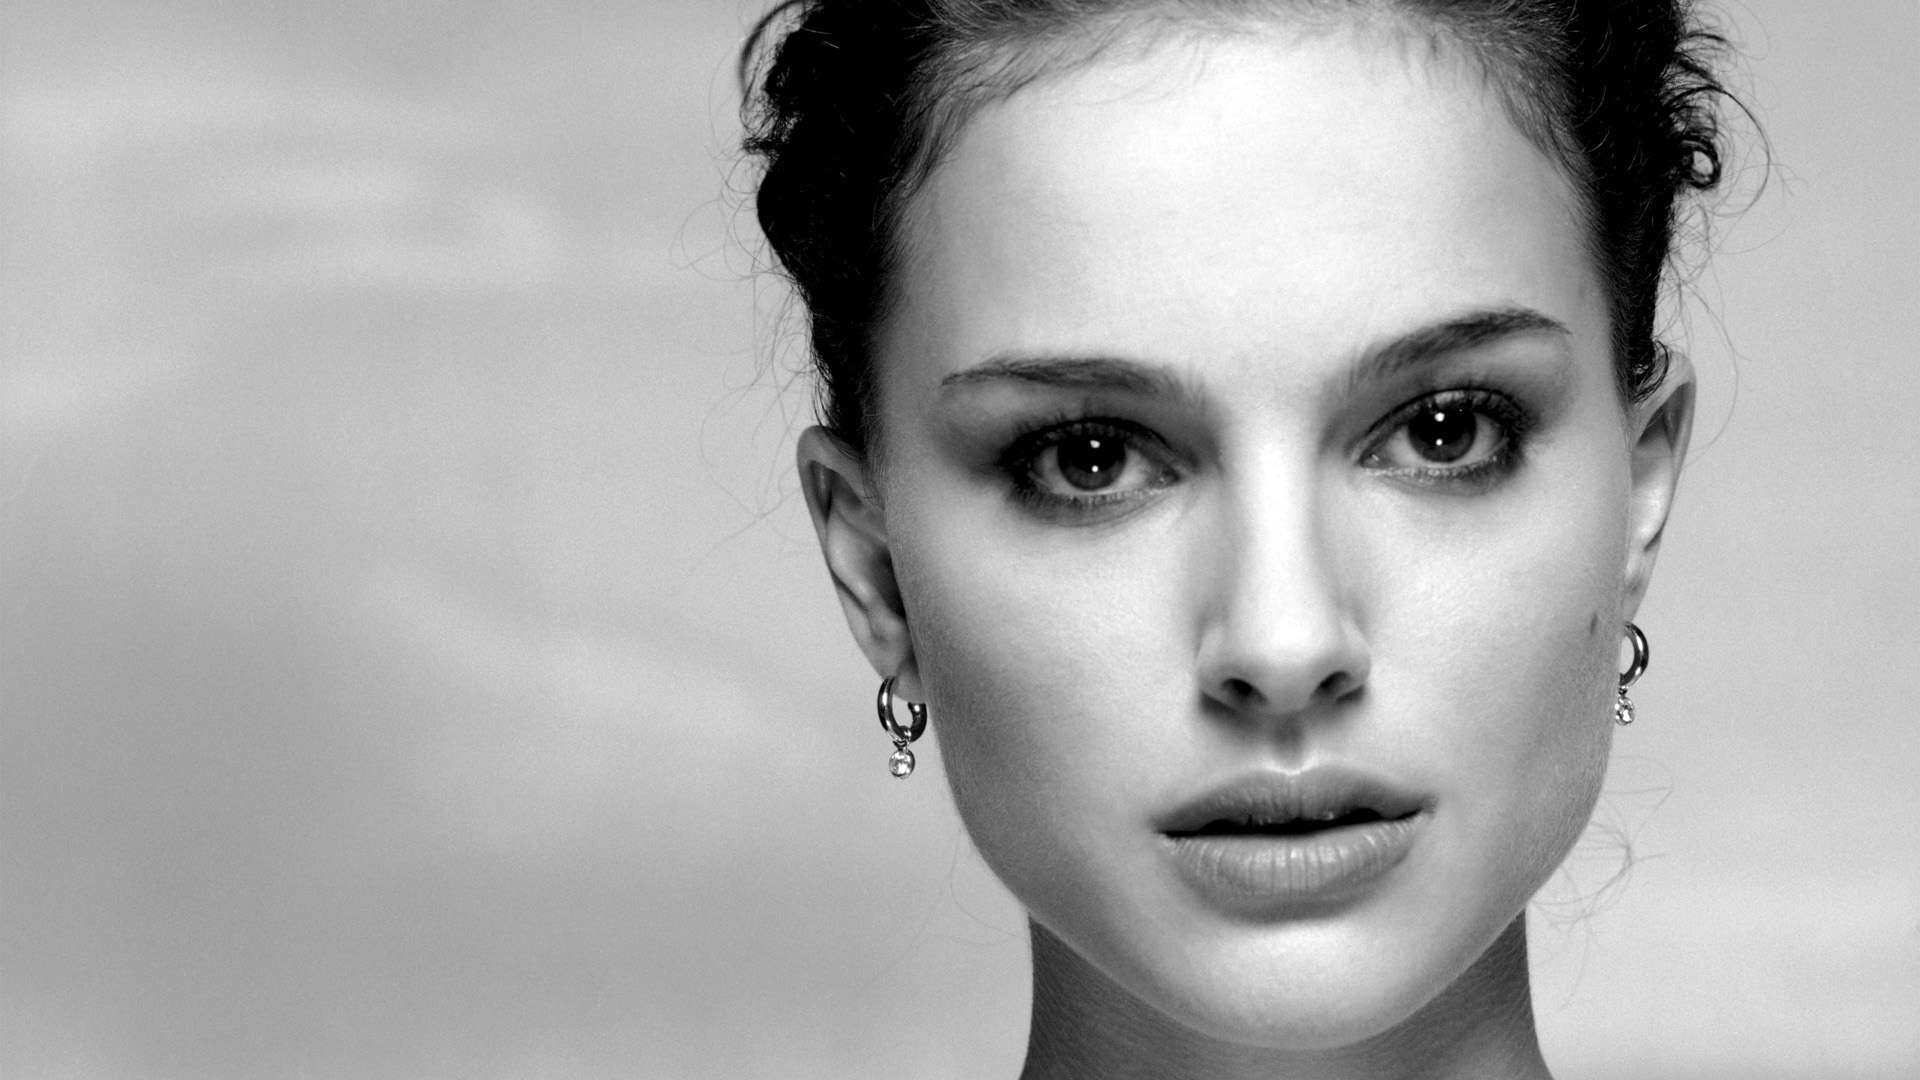 Natalie Portman Wallpapers Animation